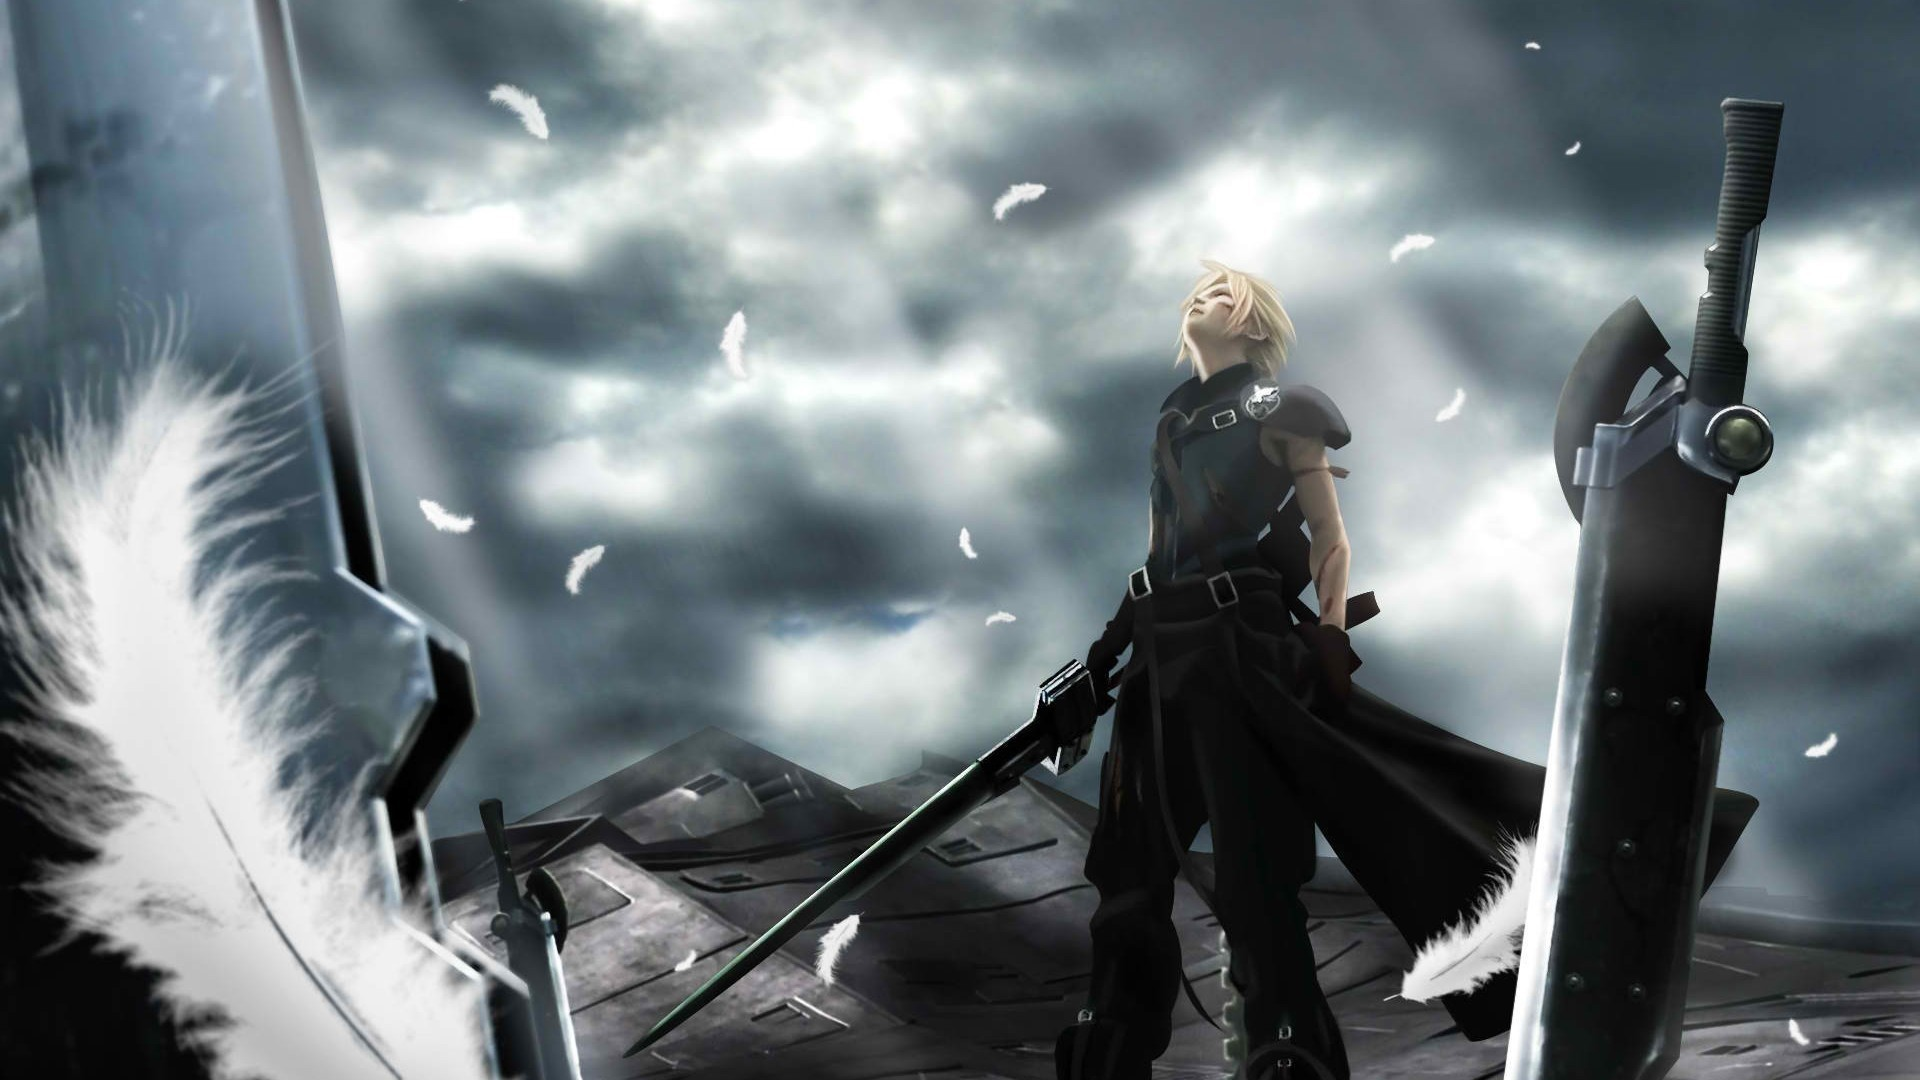 1920x1080 Final Fantasy VII HD Wallpaper | Background Image |  | ID:384675 -  Wallpaper Abyss